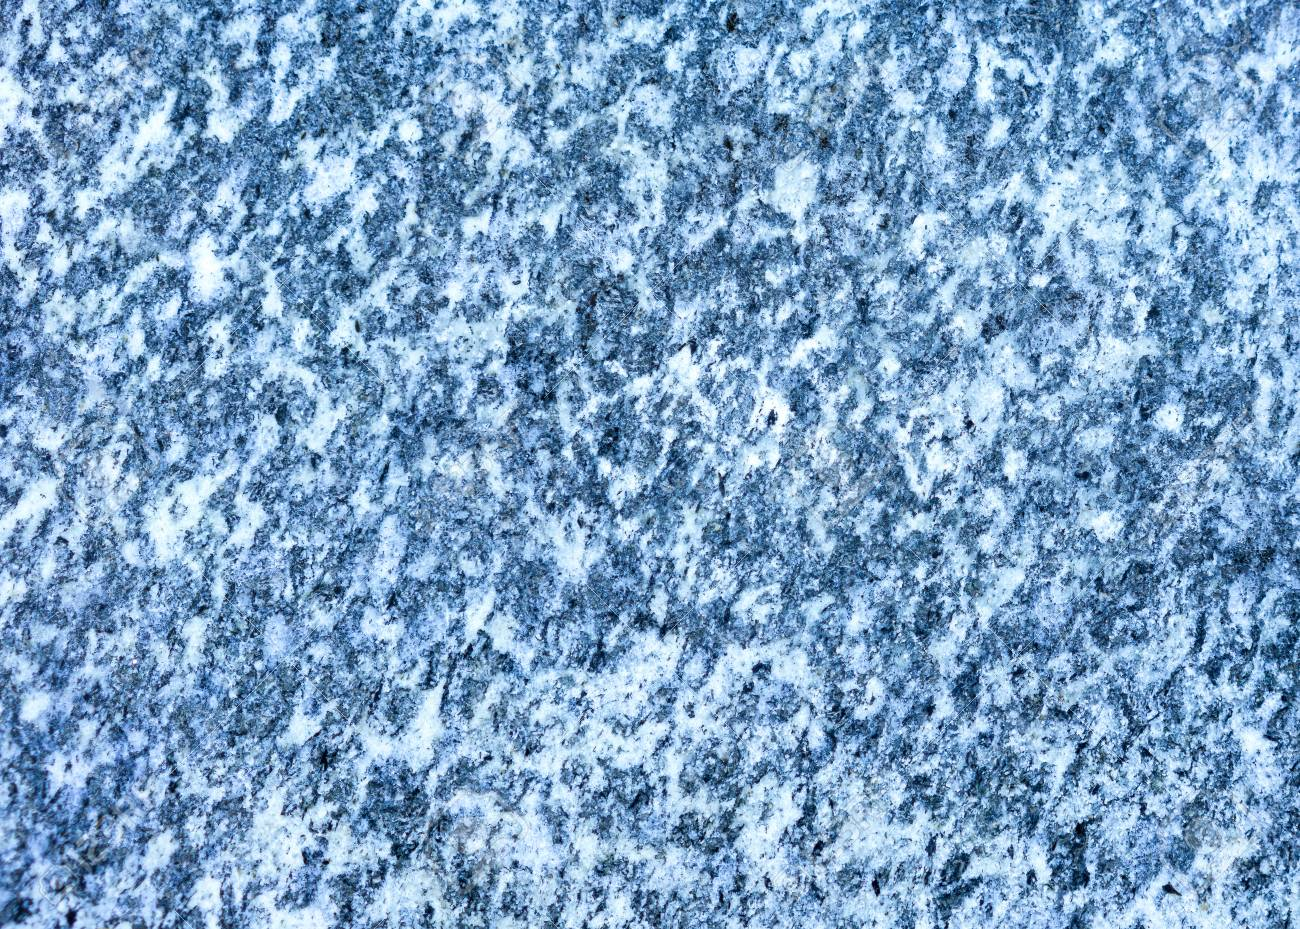 Blue Granite Stone Texture Natural Light Surface For Sill Steps Stock Photo Picture And Royalty Free Image Image 72849430